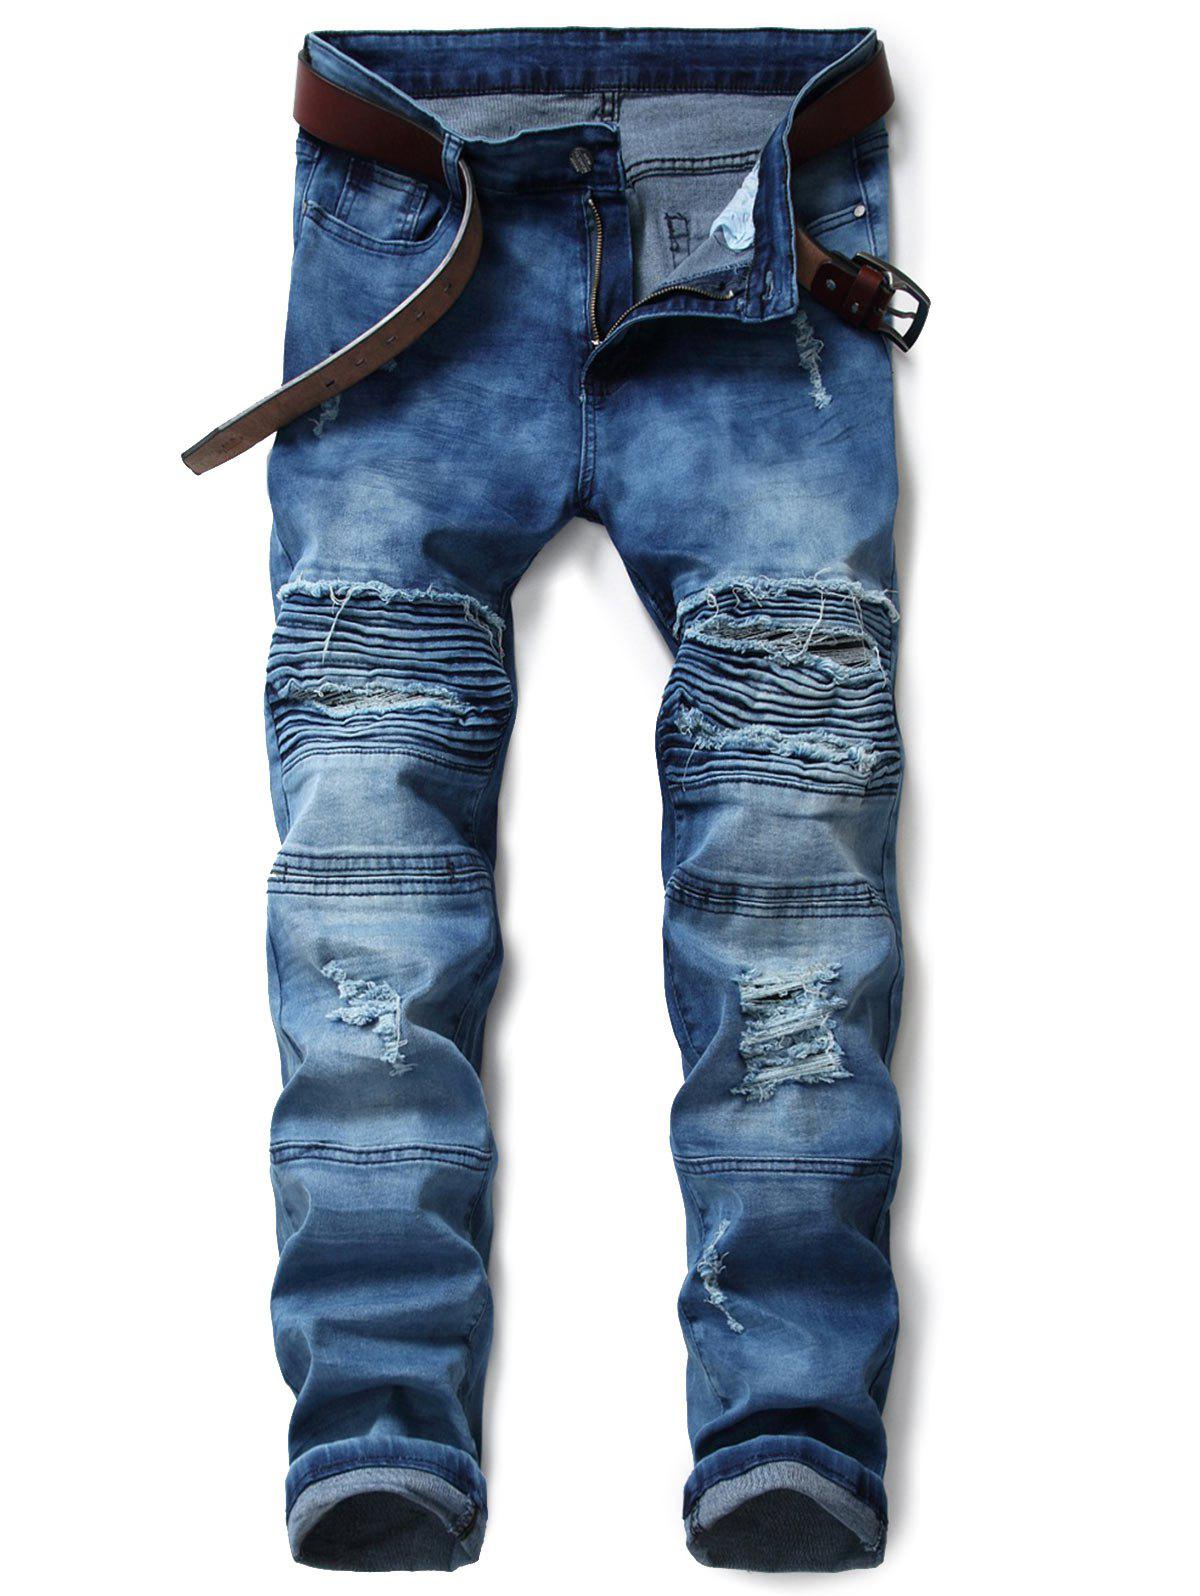 Unique Zip Fly Tie Dyed Distressed Biker Jeans